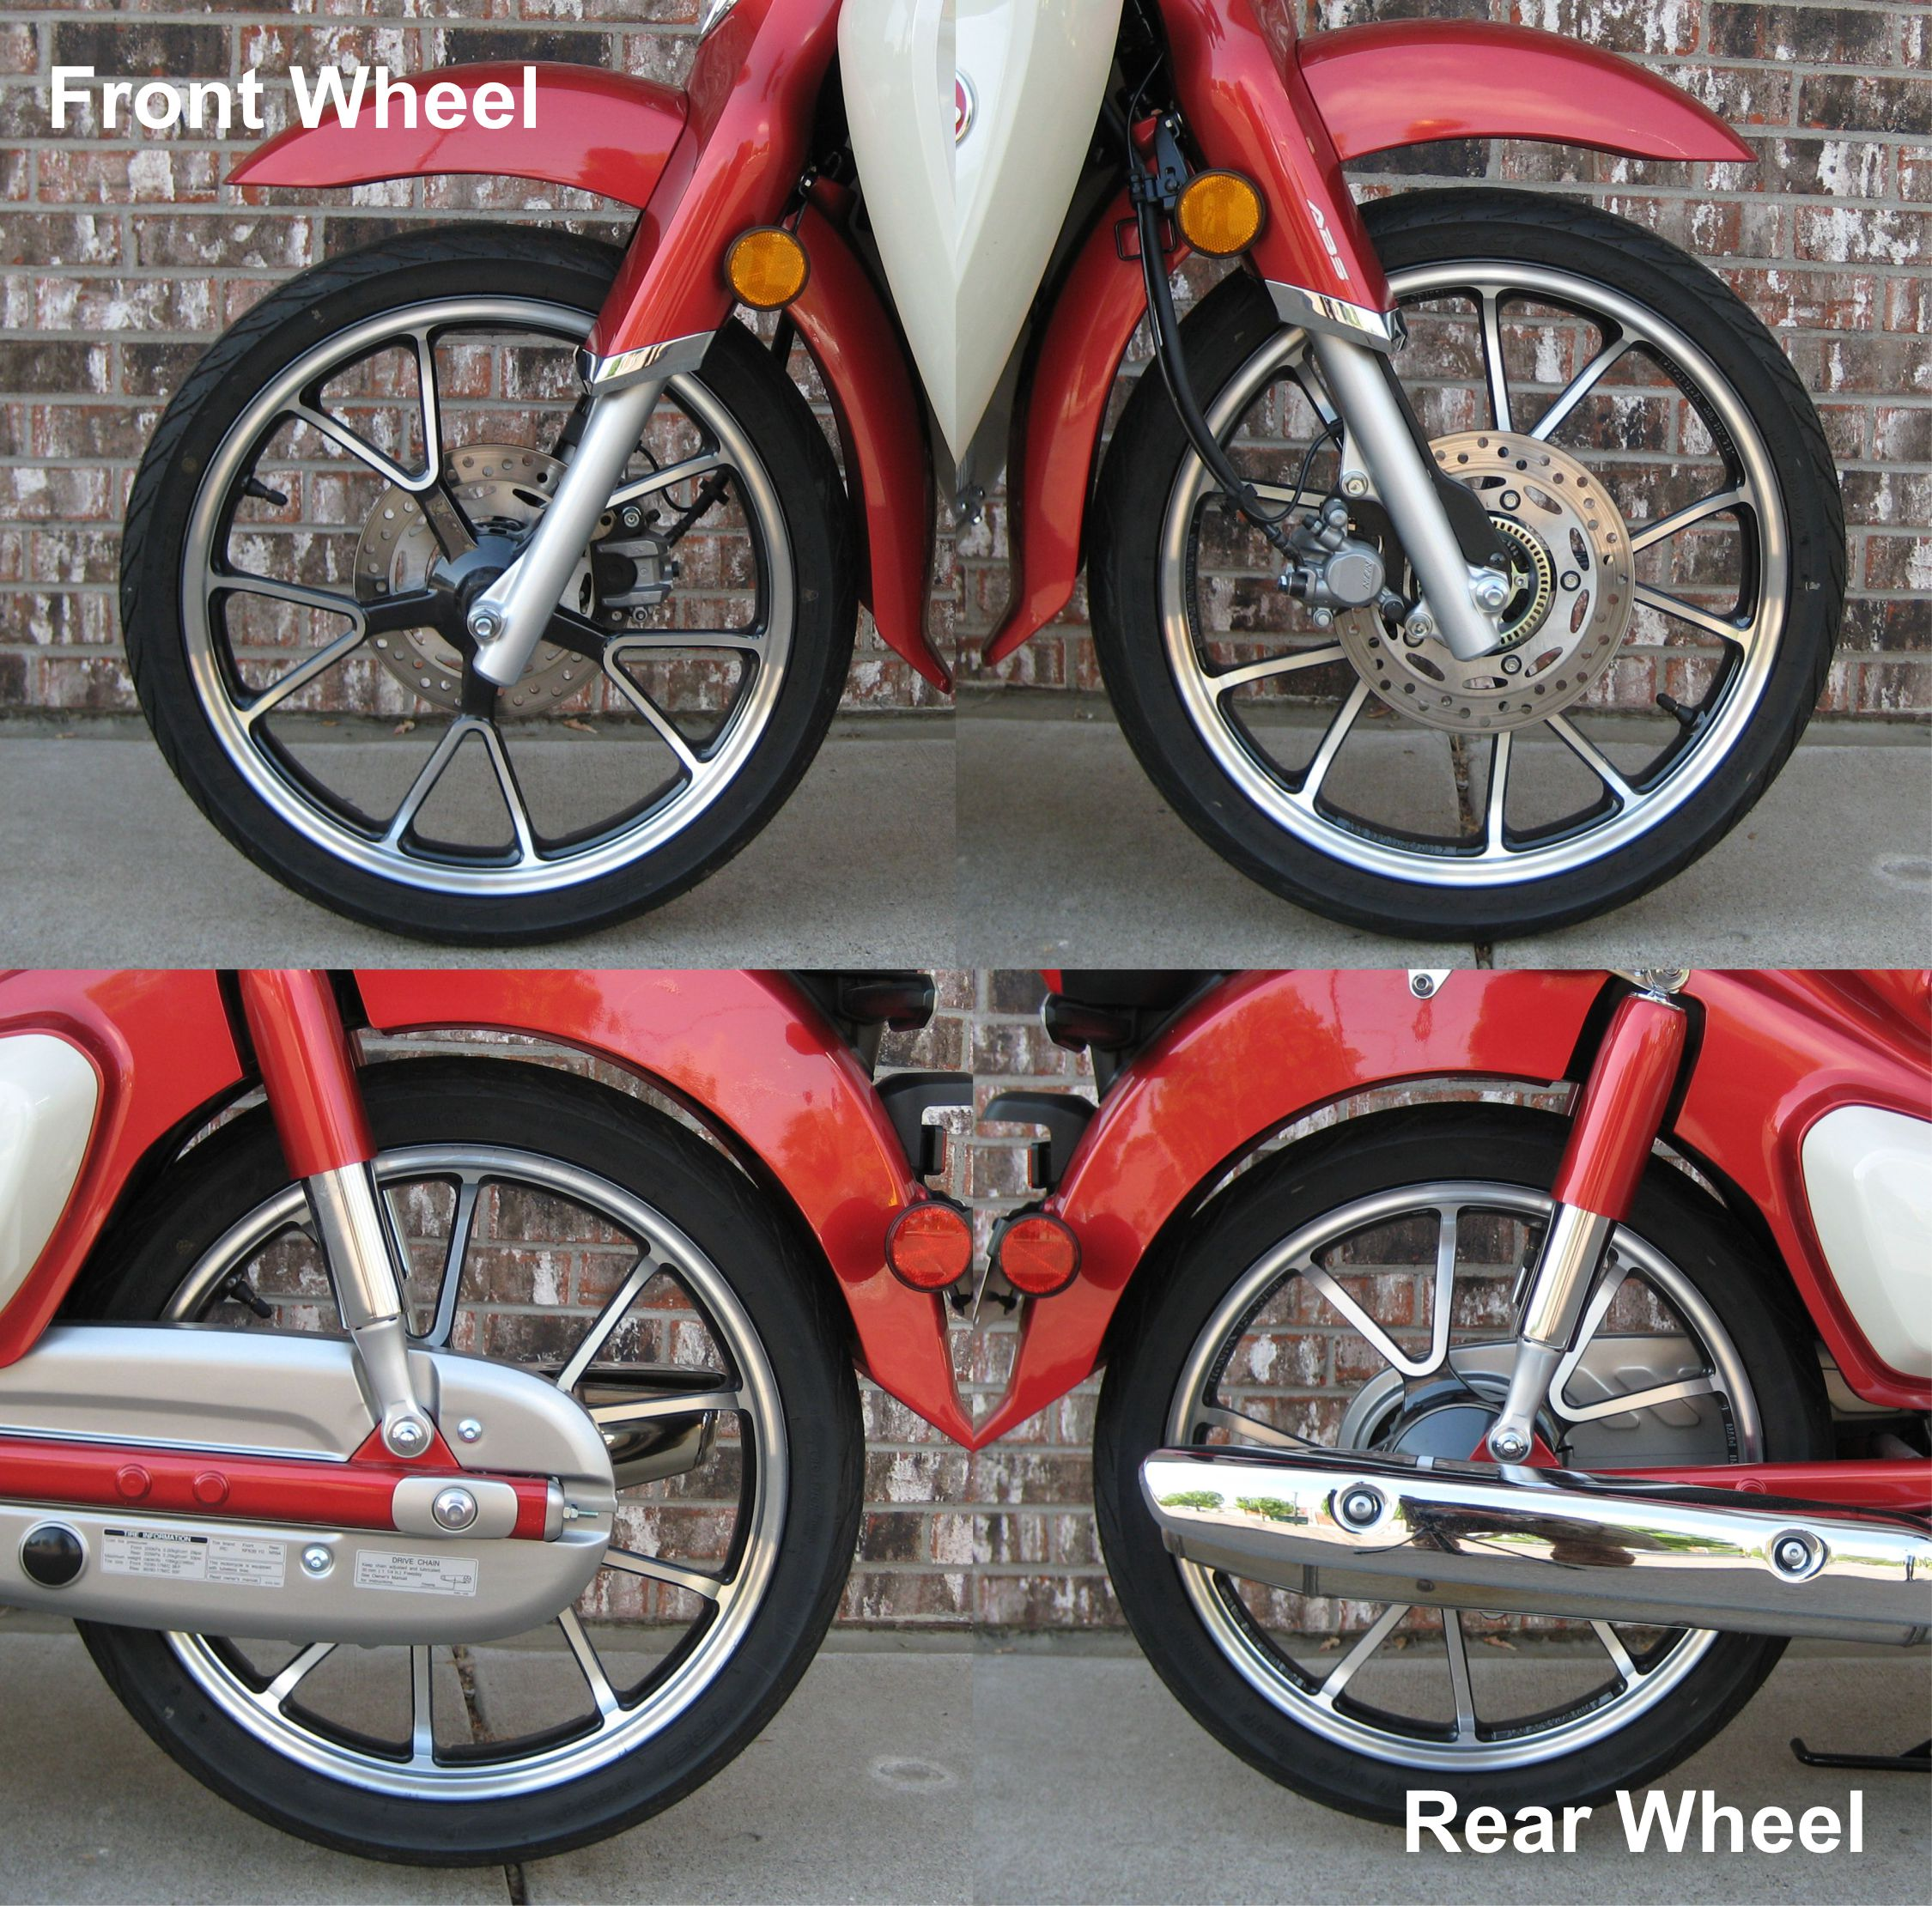 Side by side comparisons of front and rear wheels on Super Cub